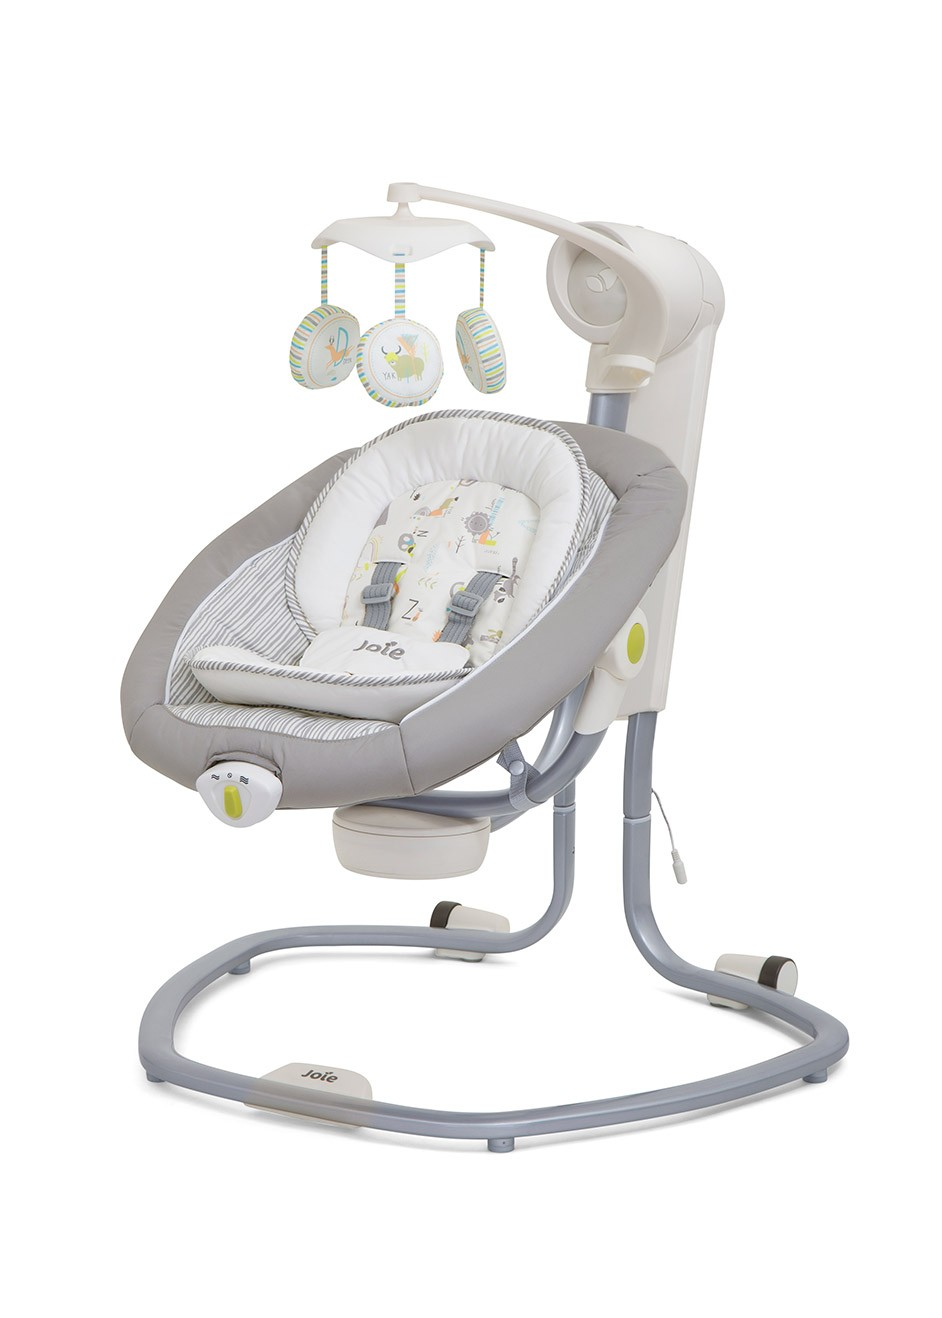 Joie Baby Swing Rocker Joie Serina Swivel Baby Swing Sway Nature S Alphabet